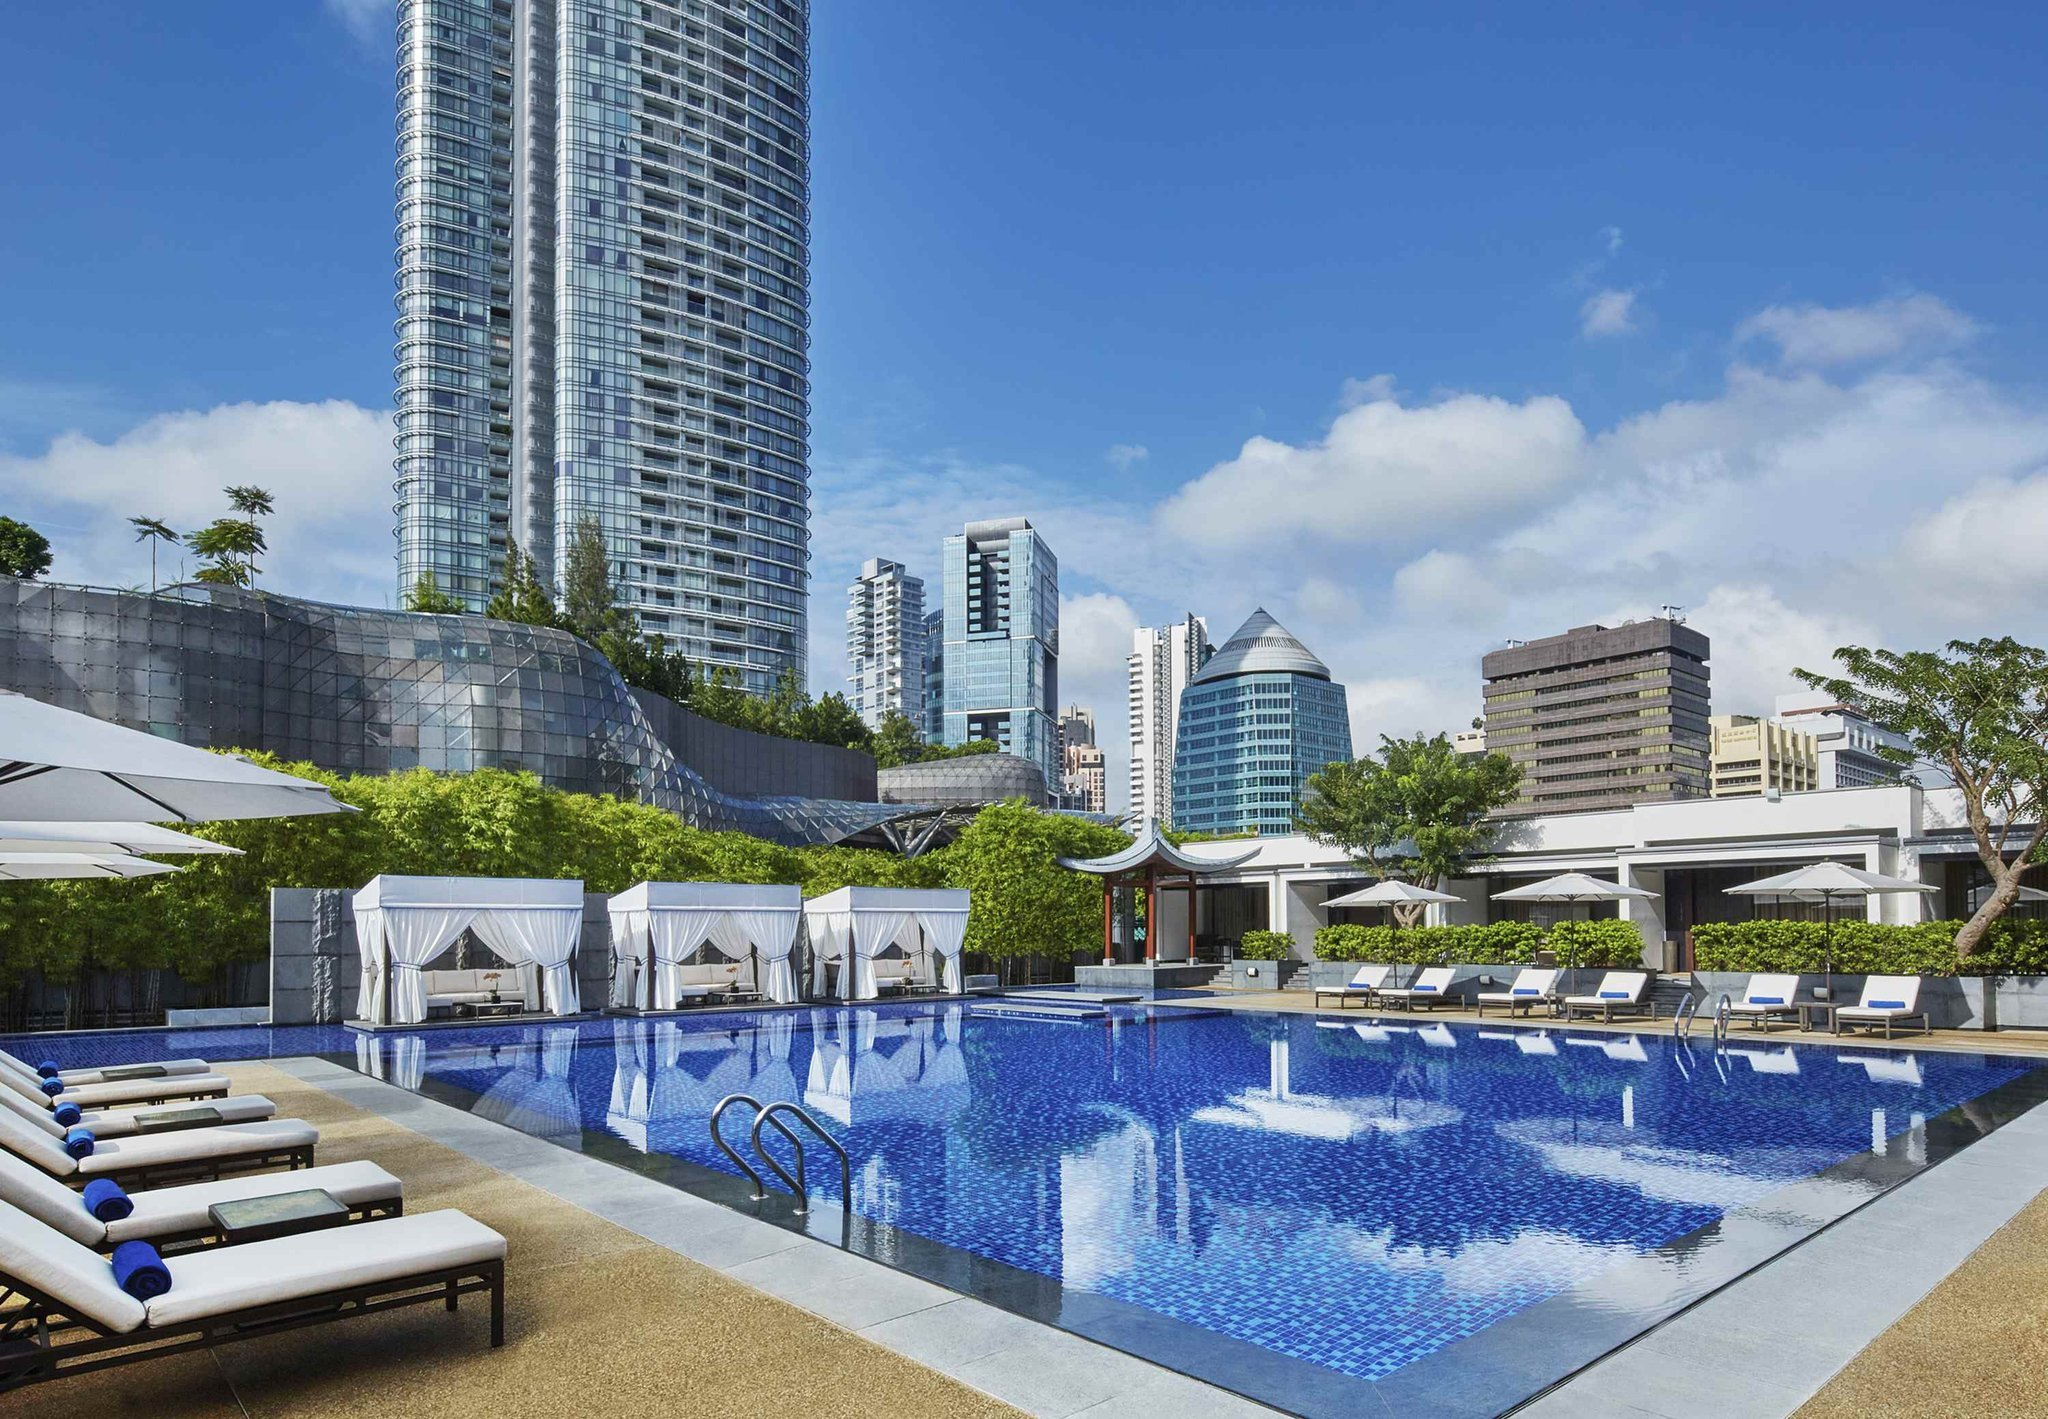 Orchard Road (Singapore) - All You Need to Know Before You